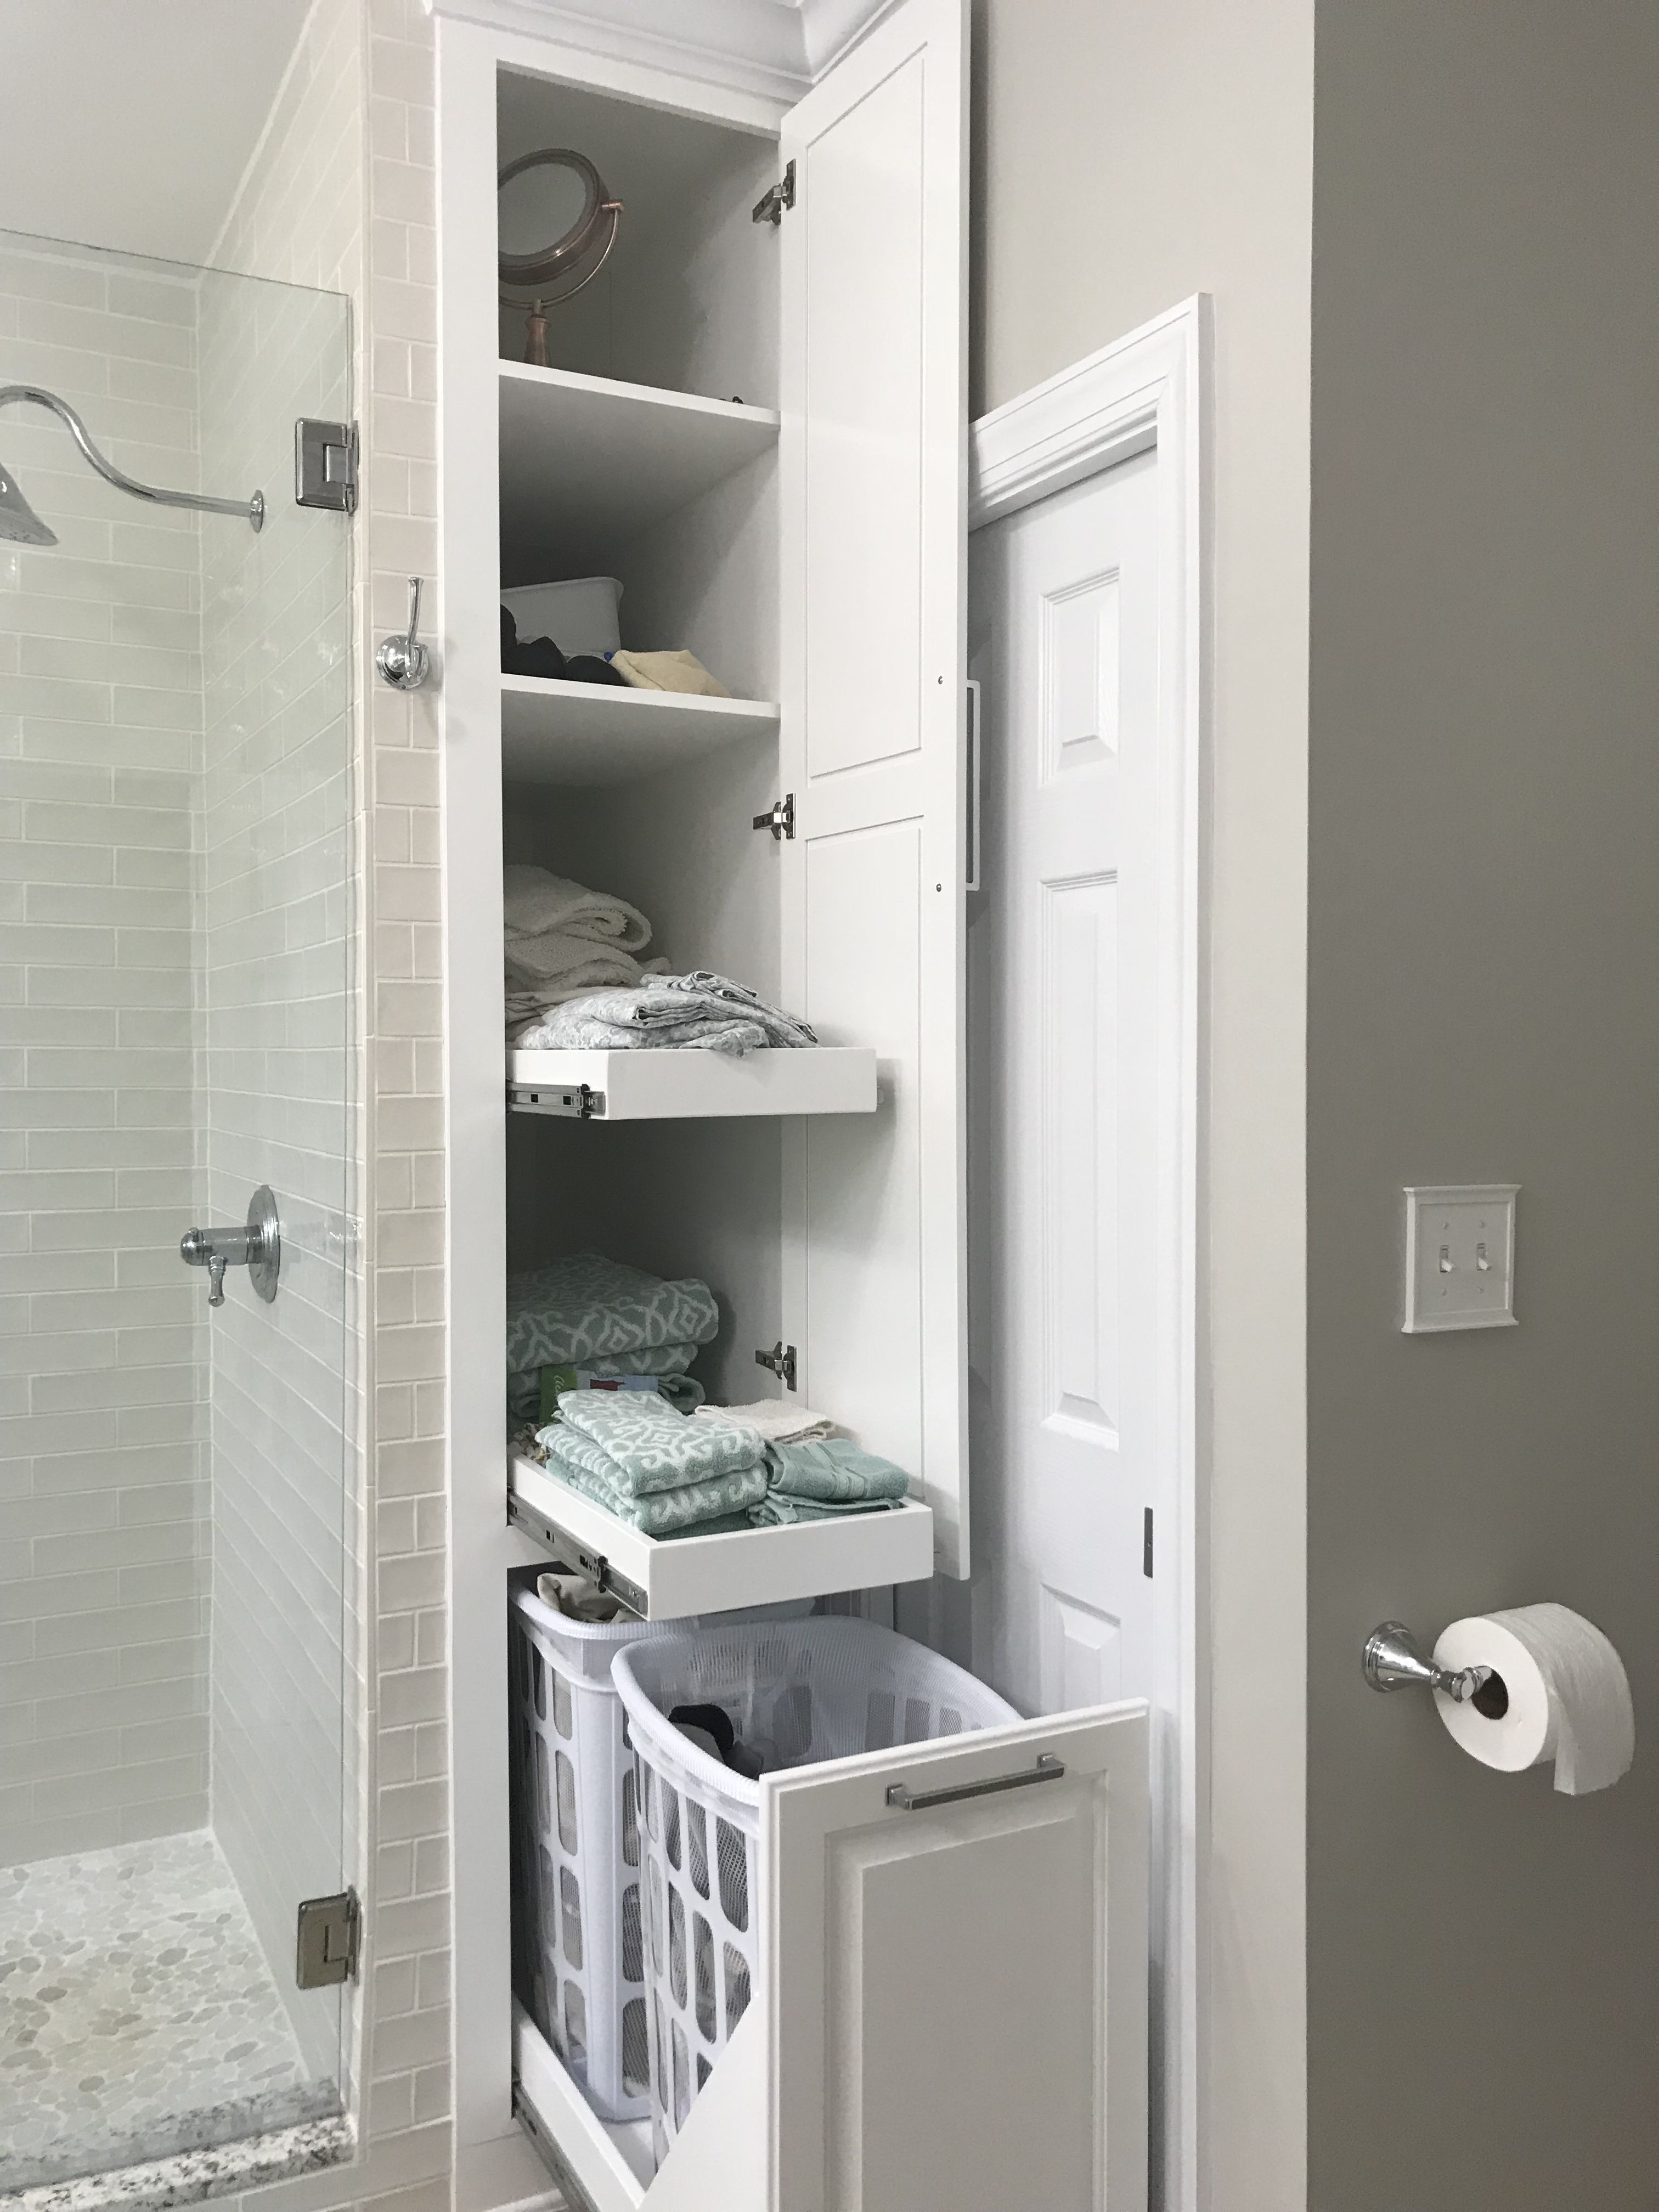 55 bathroom storage solutions for small space storage - Bathroom storage ideas small spaces ...